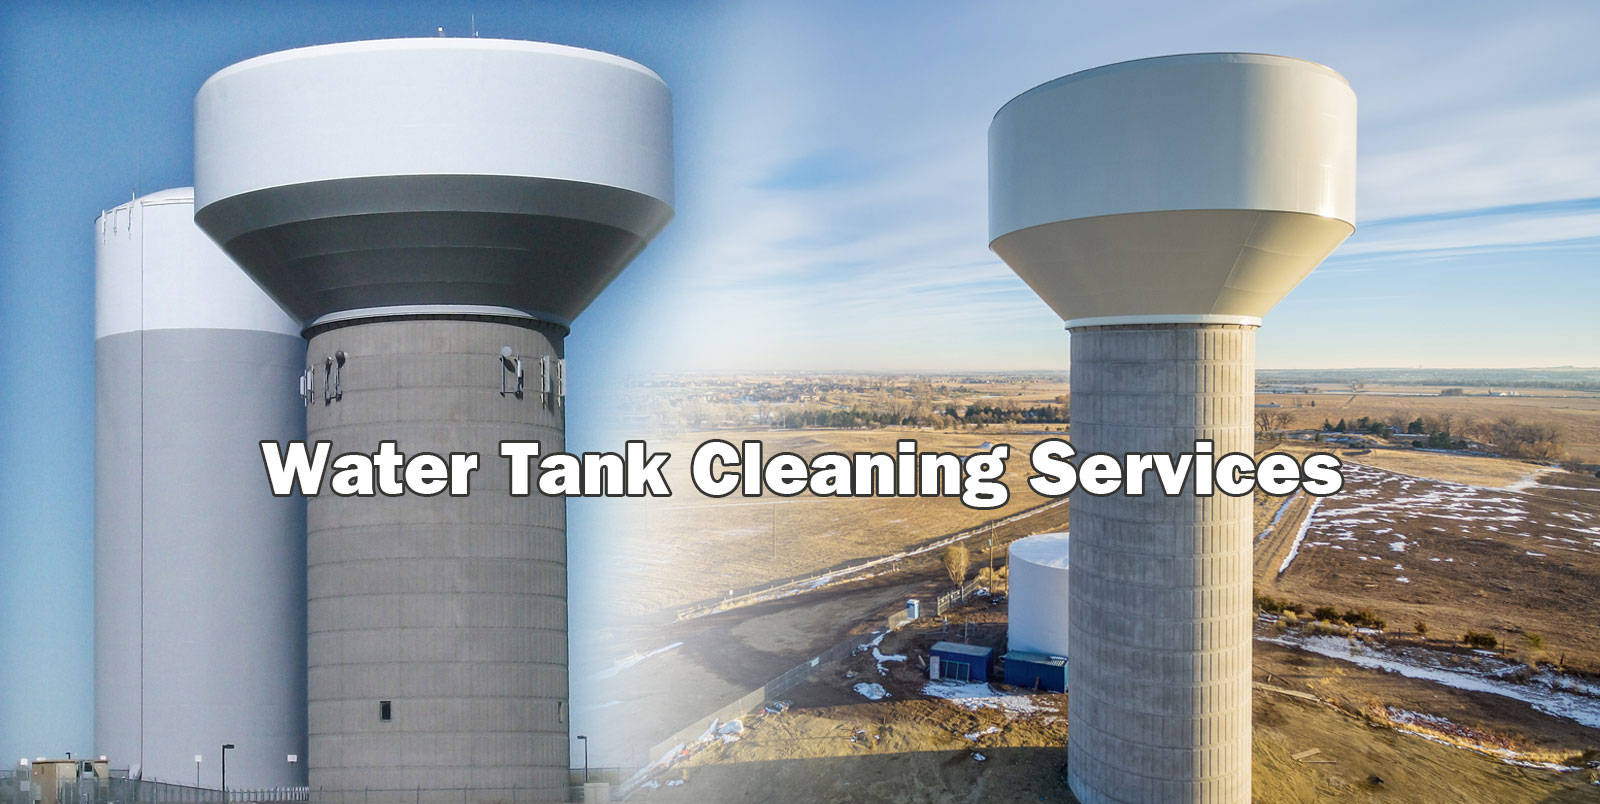 Tank Cleaning @Max Cleaner